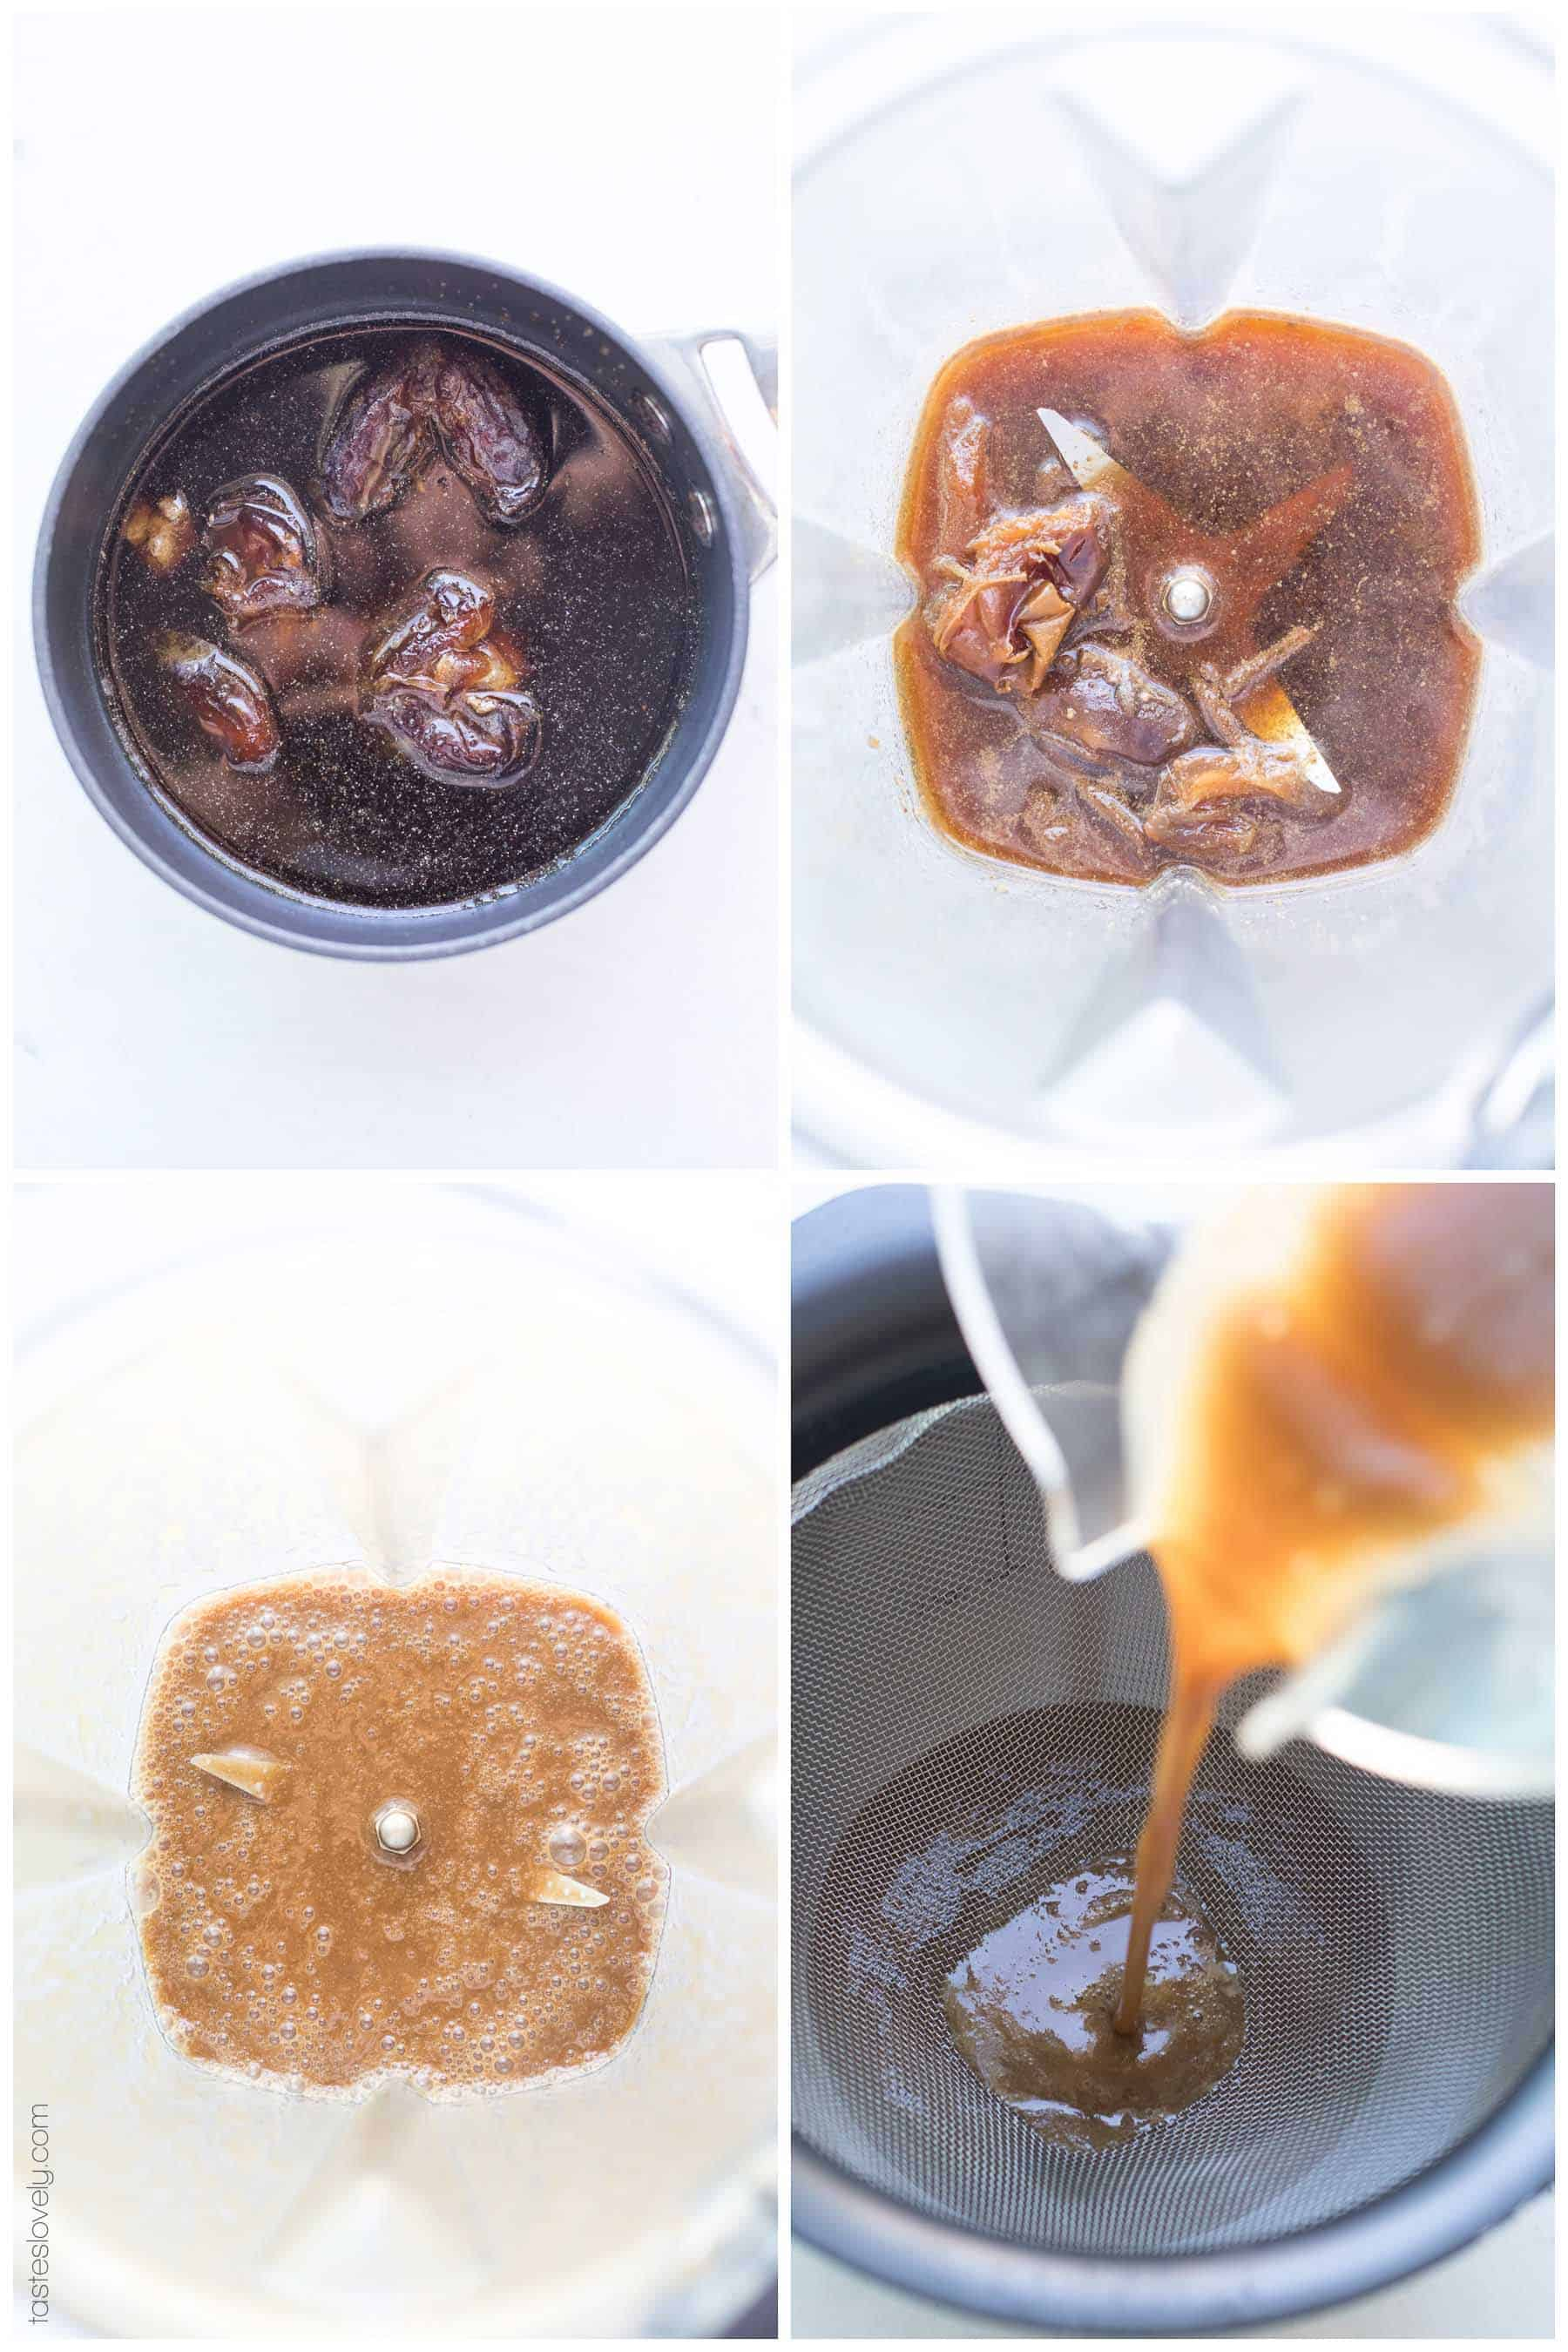 Paleo + Whole30 Homemade Worcestershire Sauce Recipe - tastes exactly like the real deal but sugar free and soy free! Made with coconut aminos and dates. #paleo #whole30 #glutenfree #grainfree #soyfree #sugarfree